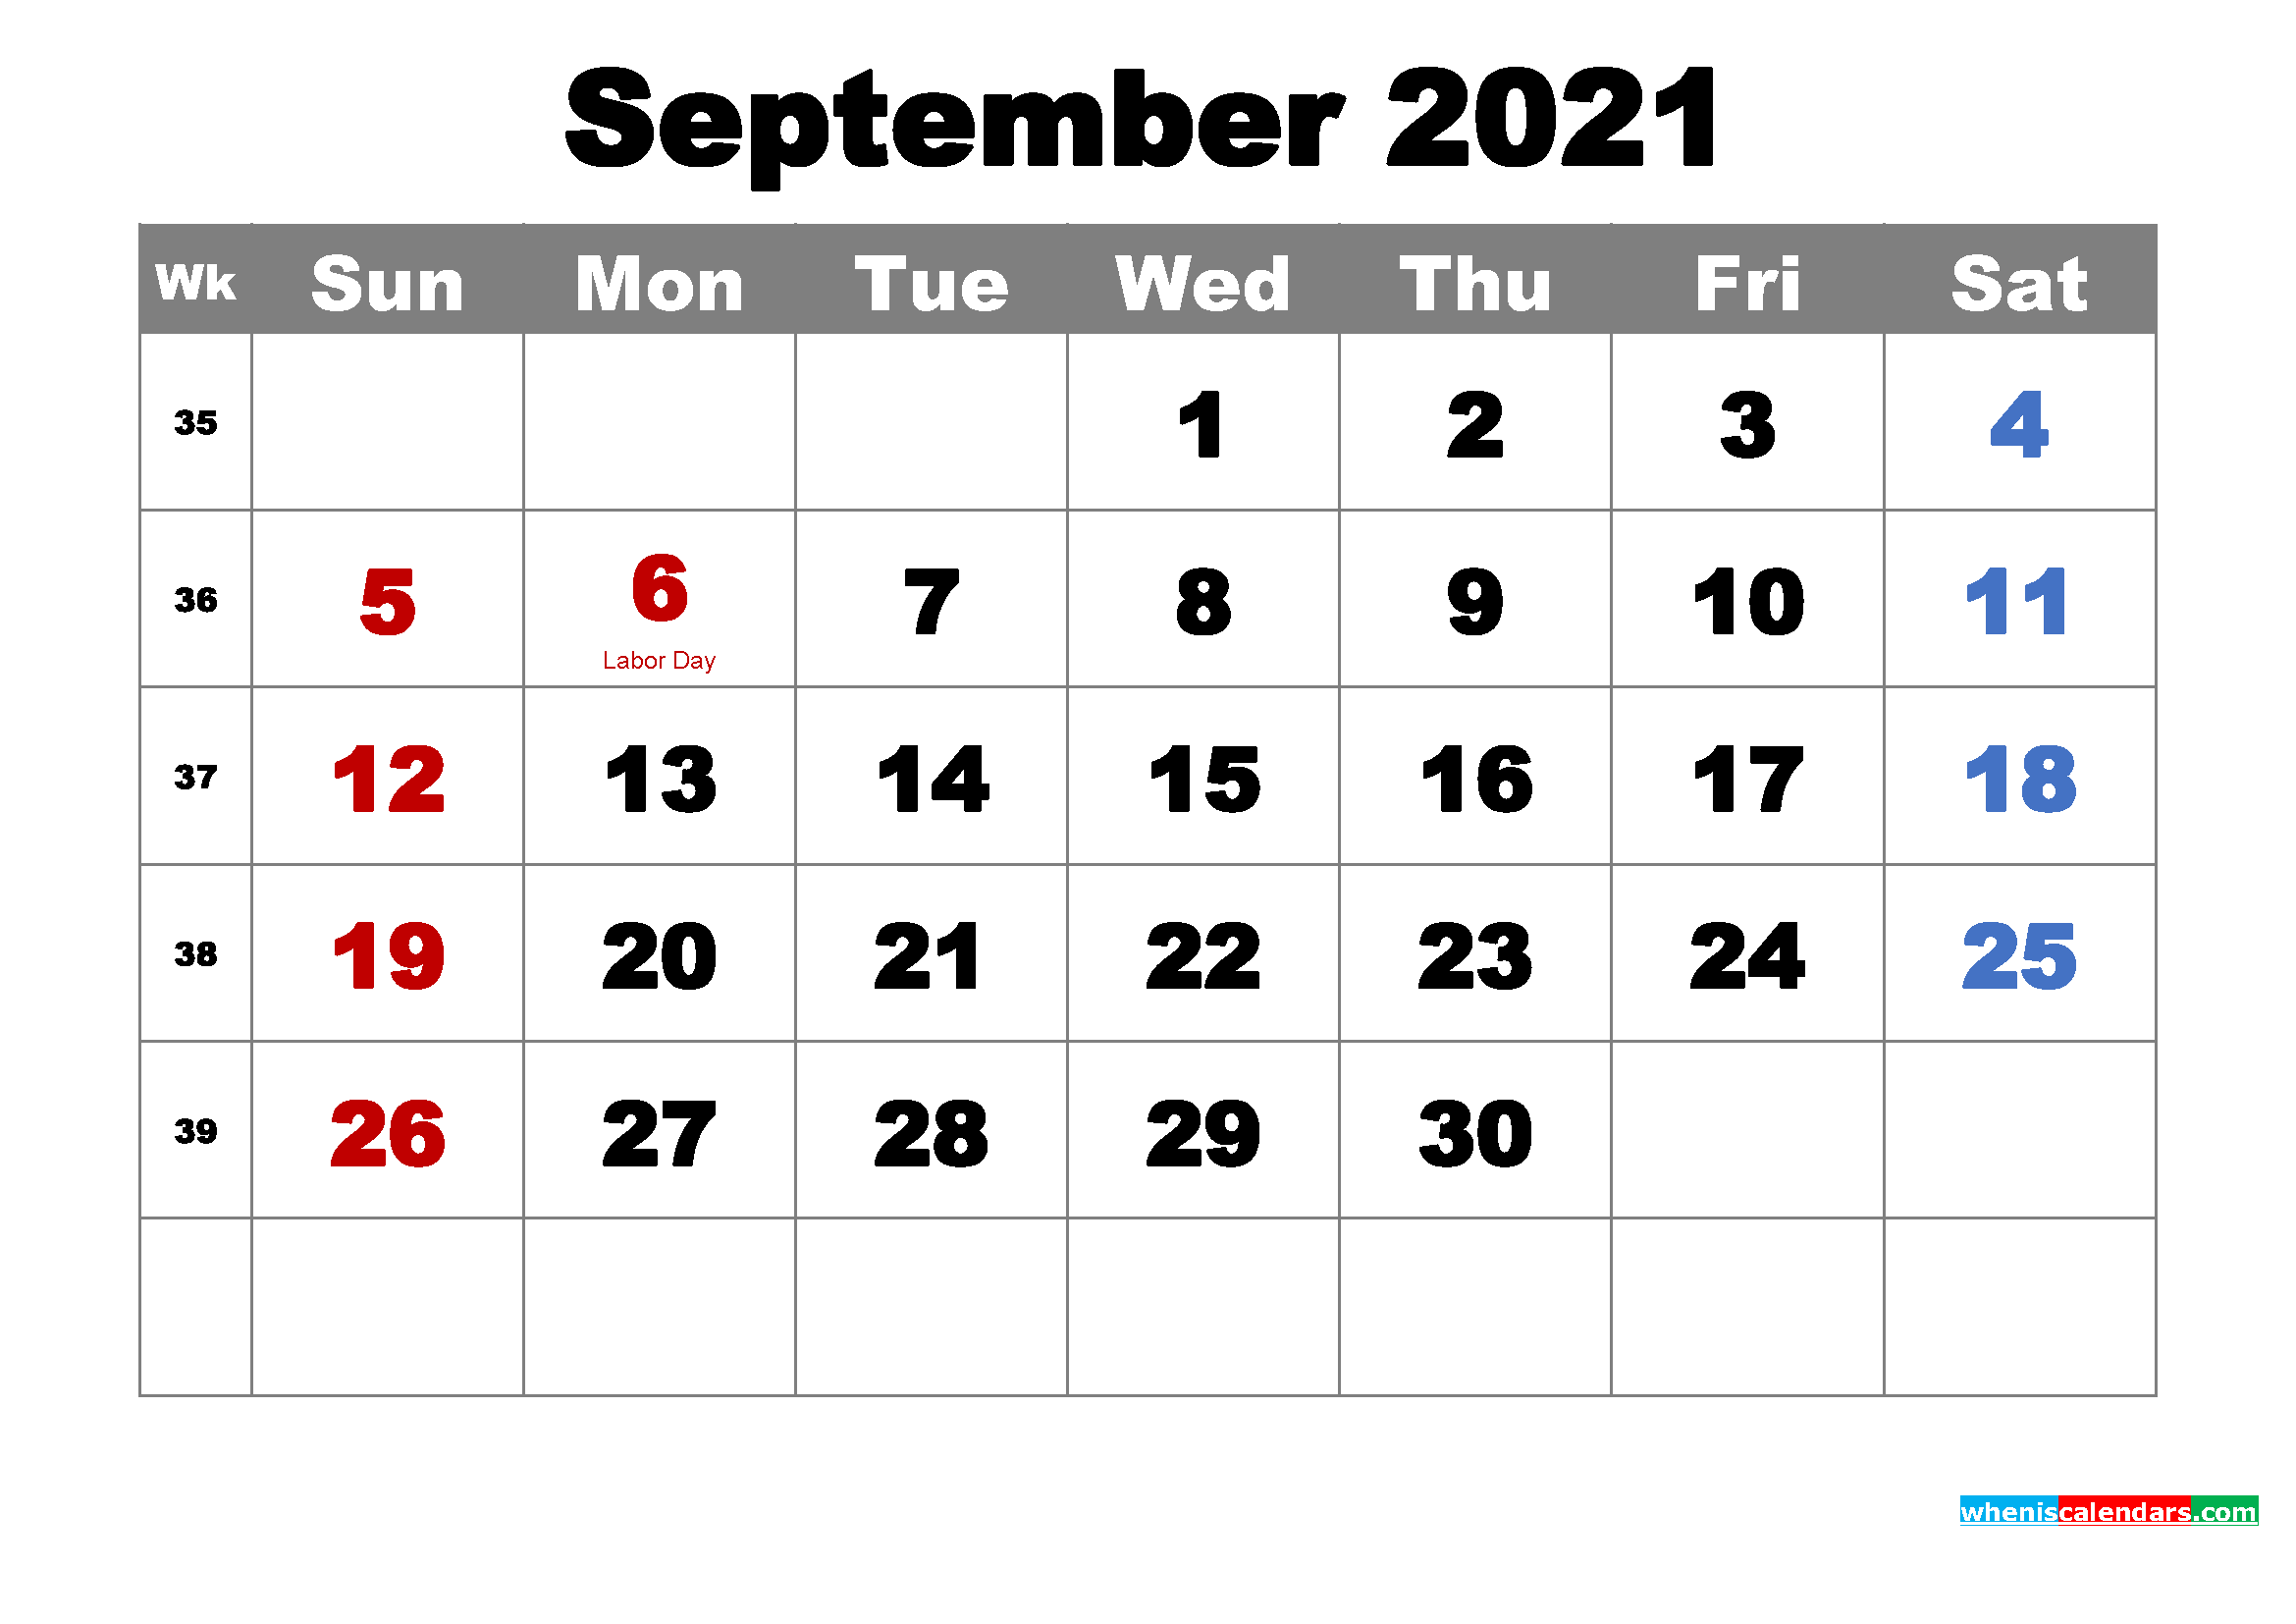 Printable Calendar September 2021 with Holidays as Word, PDF